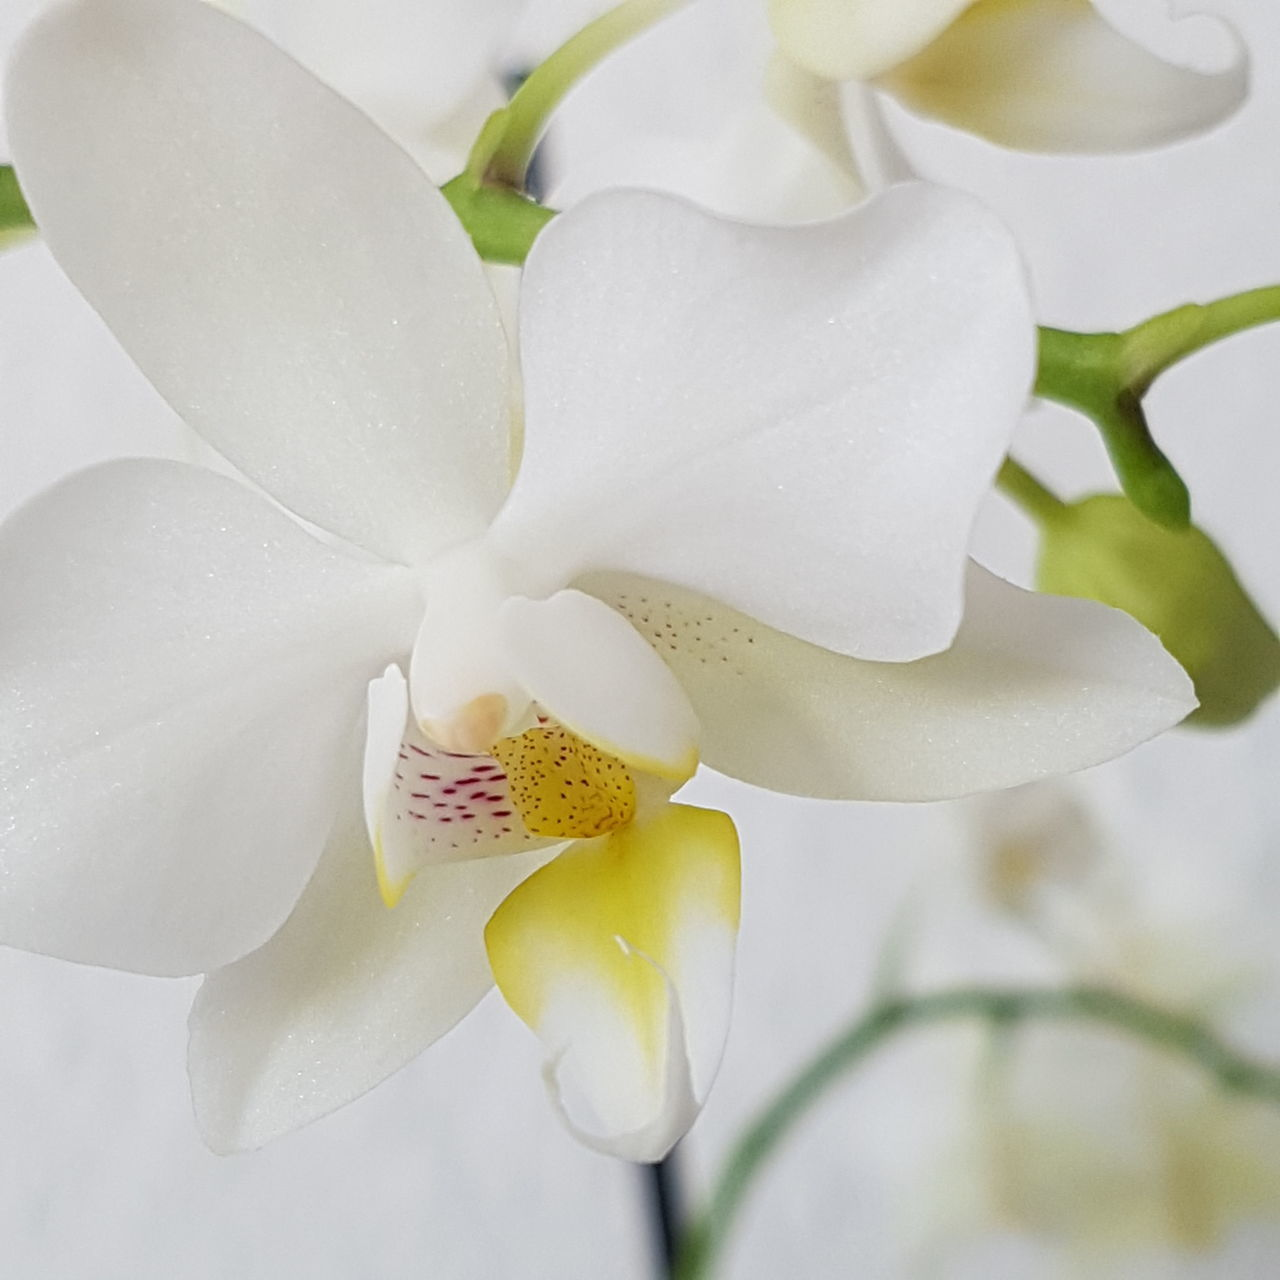 Studio Shot Beauty In Nature Plant Nature Flower Head Beauty Fragility No People Flower Close-up Zen-like Indoors  Freshness Day Orchids Focus On Foreground Eyeemphotography Orchid Orchid Blossoms